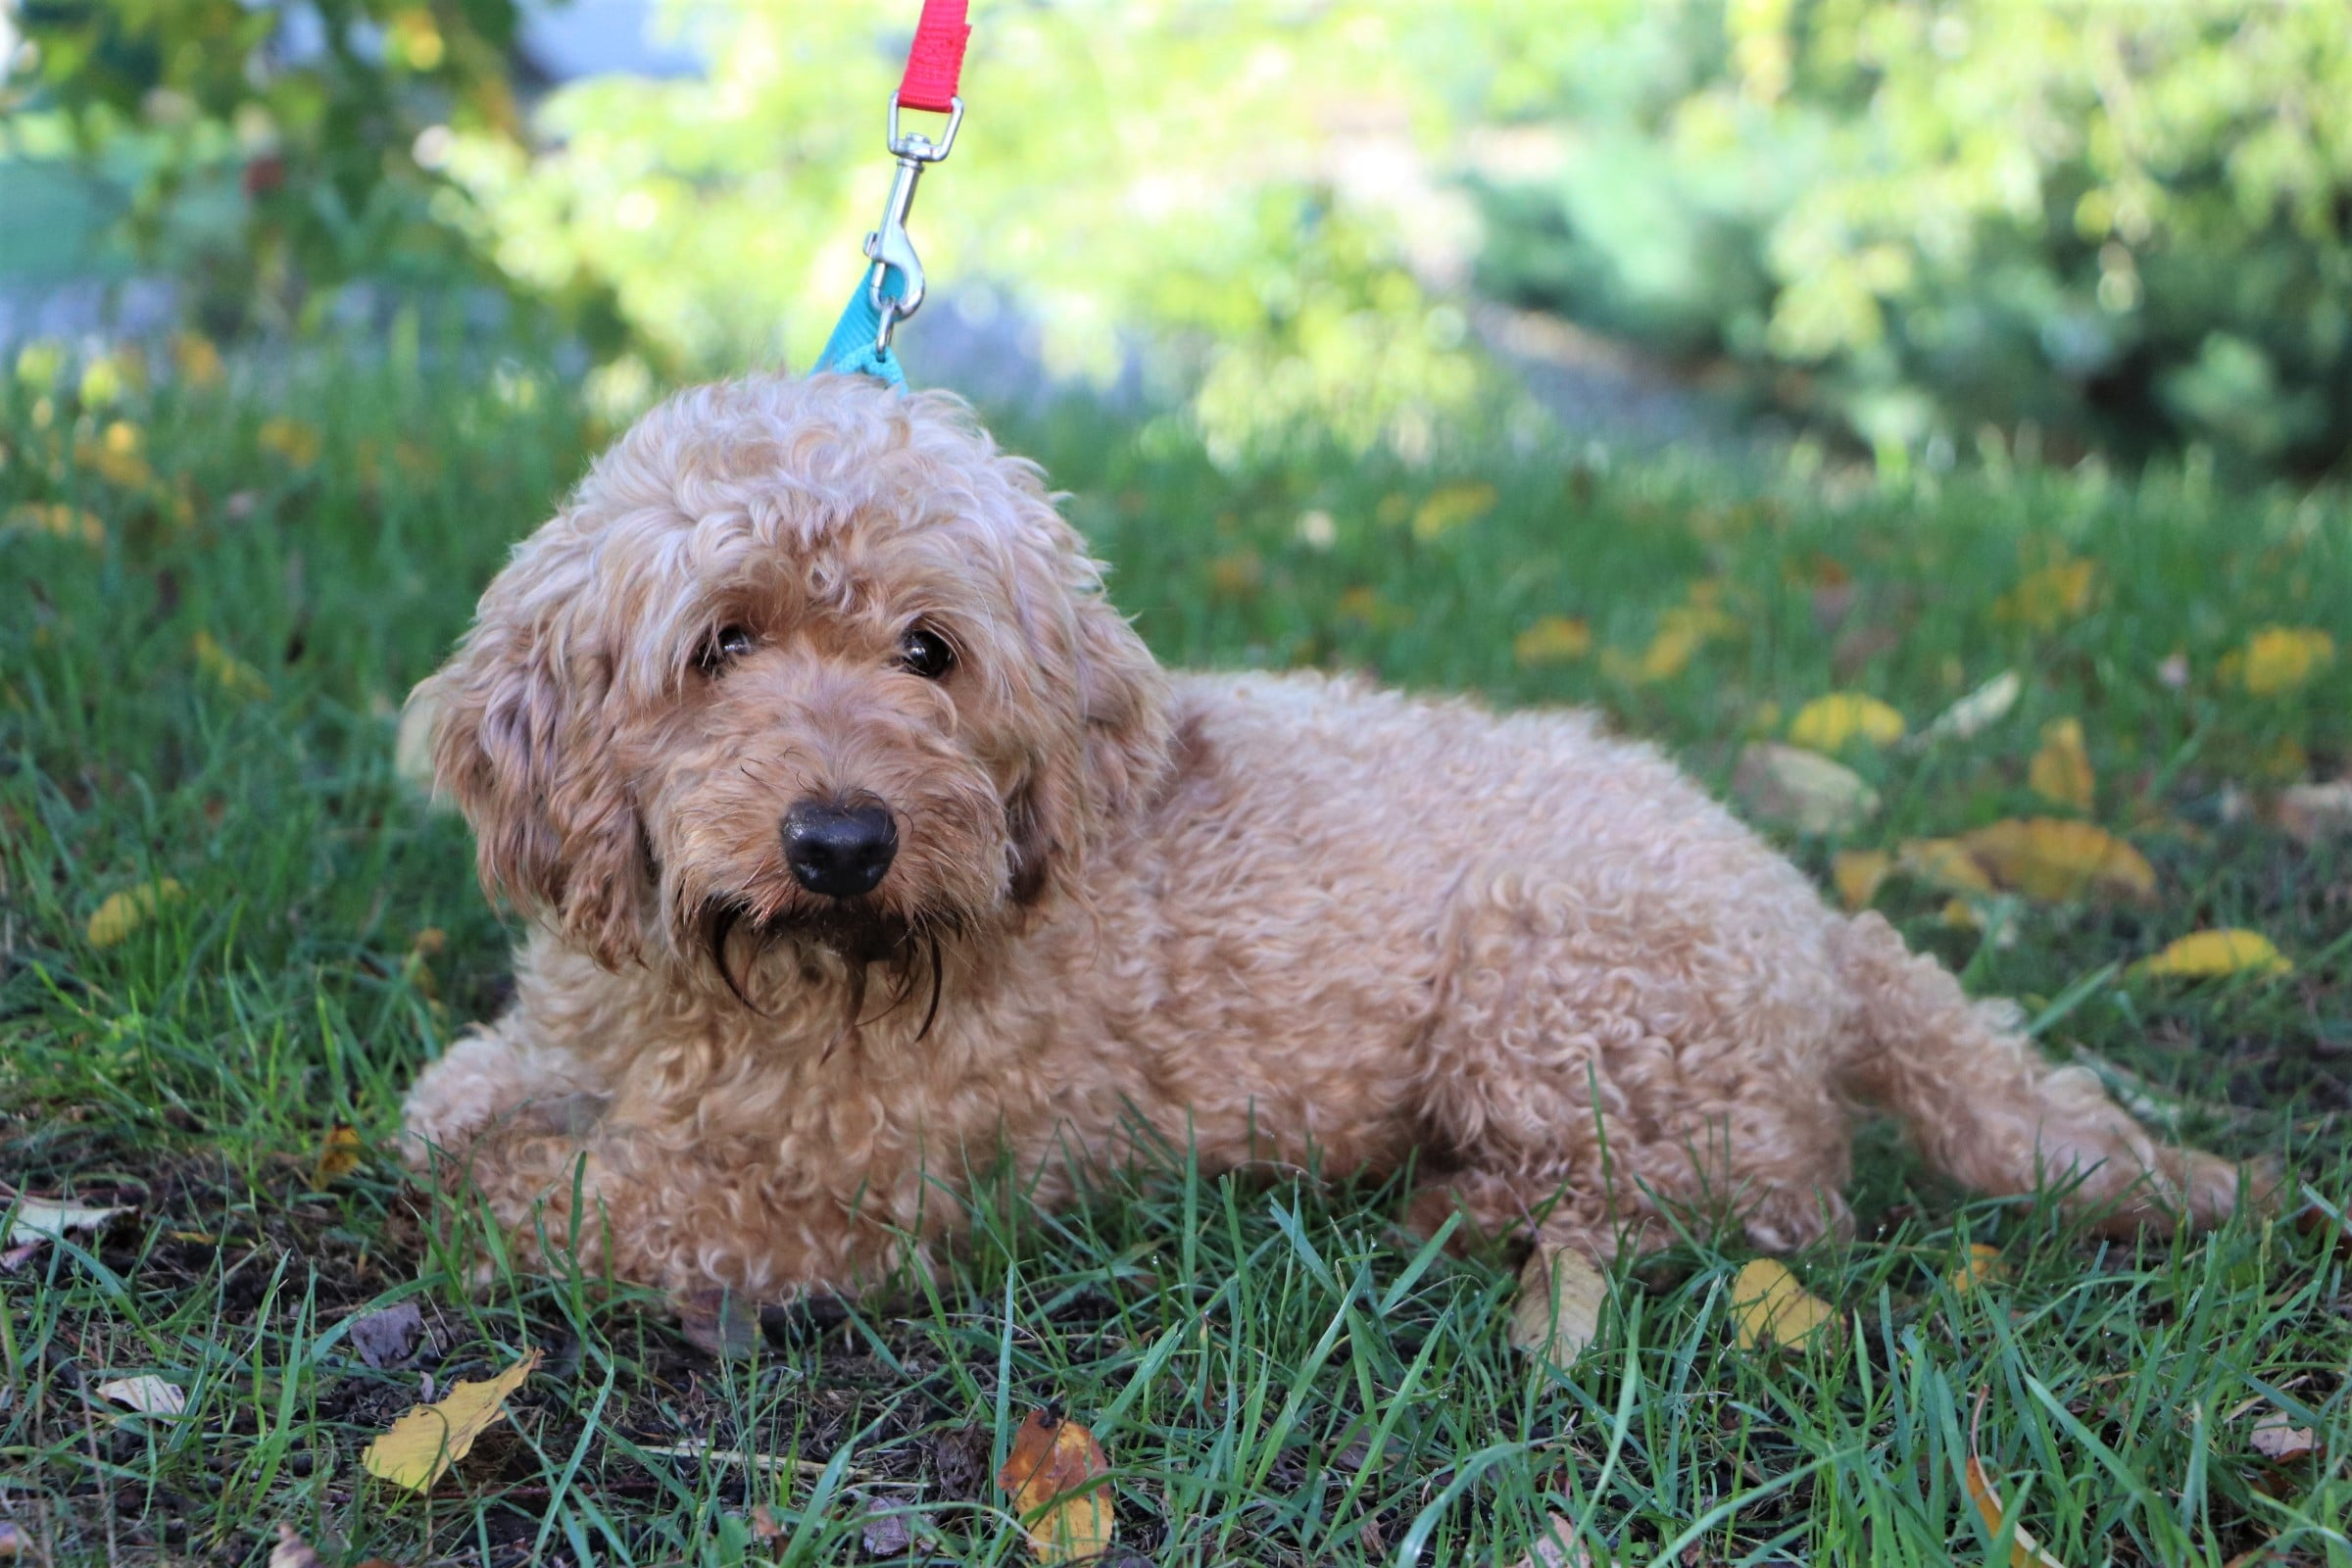 The Goldendoodle dad